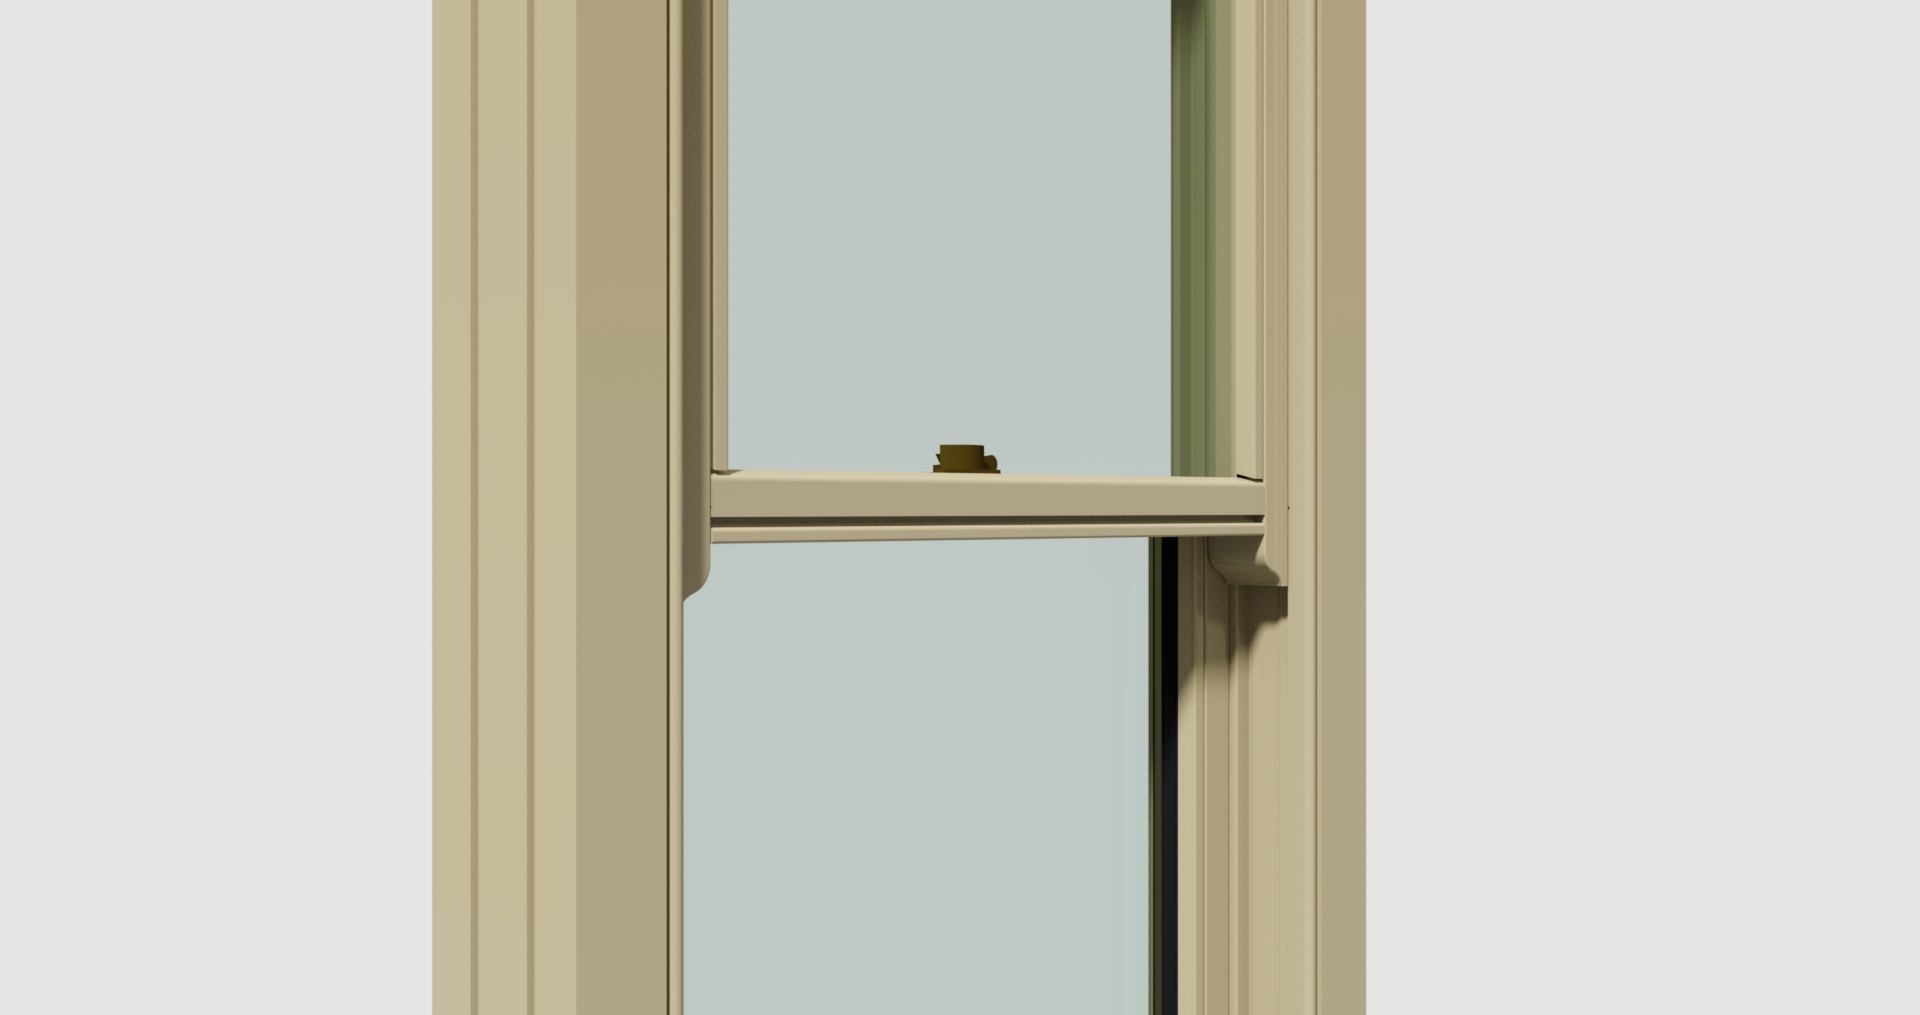 CASE STUDY: CONCEALED BALANCE SLIDING SASH WINDOW